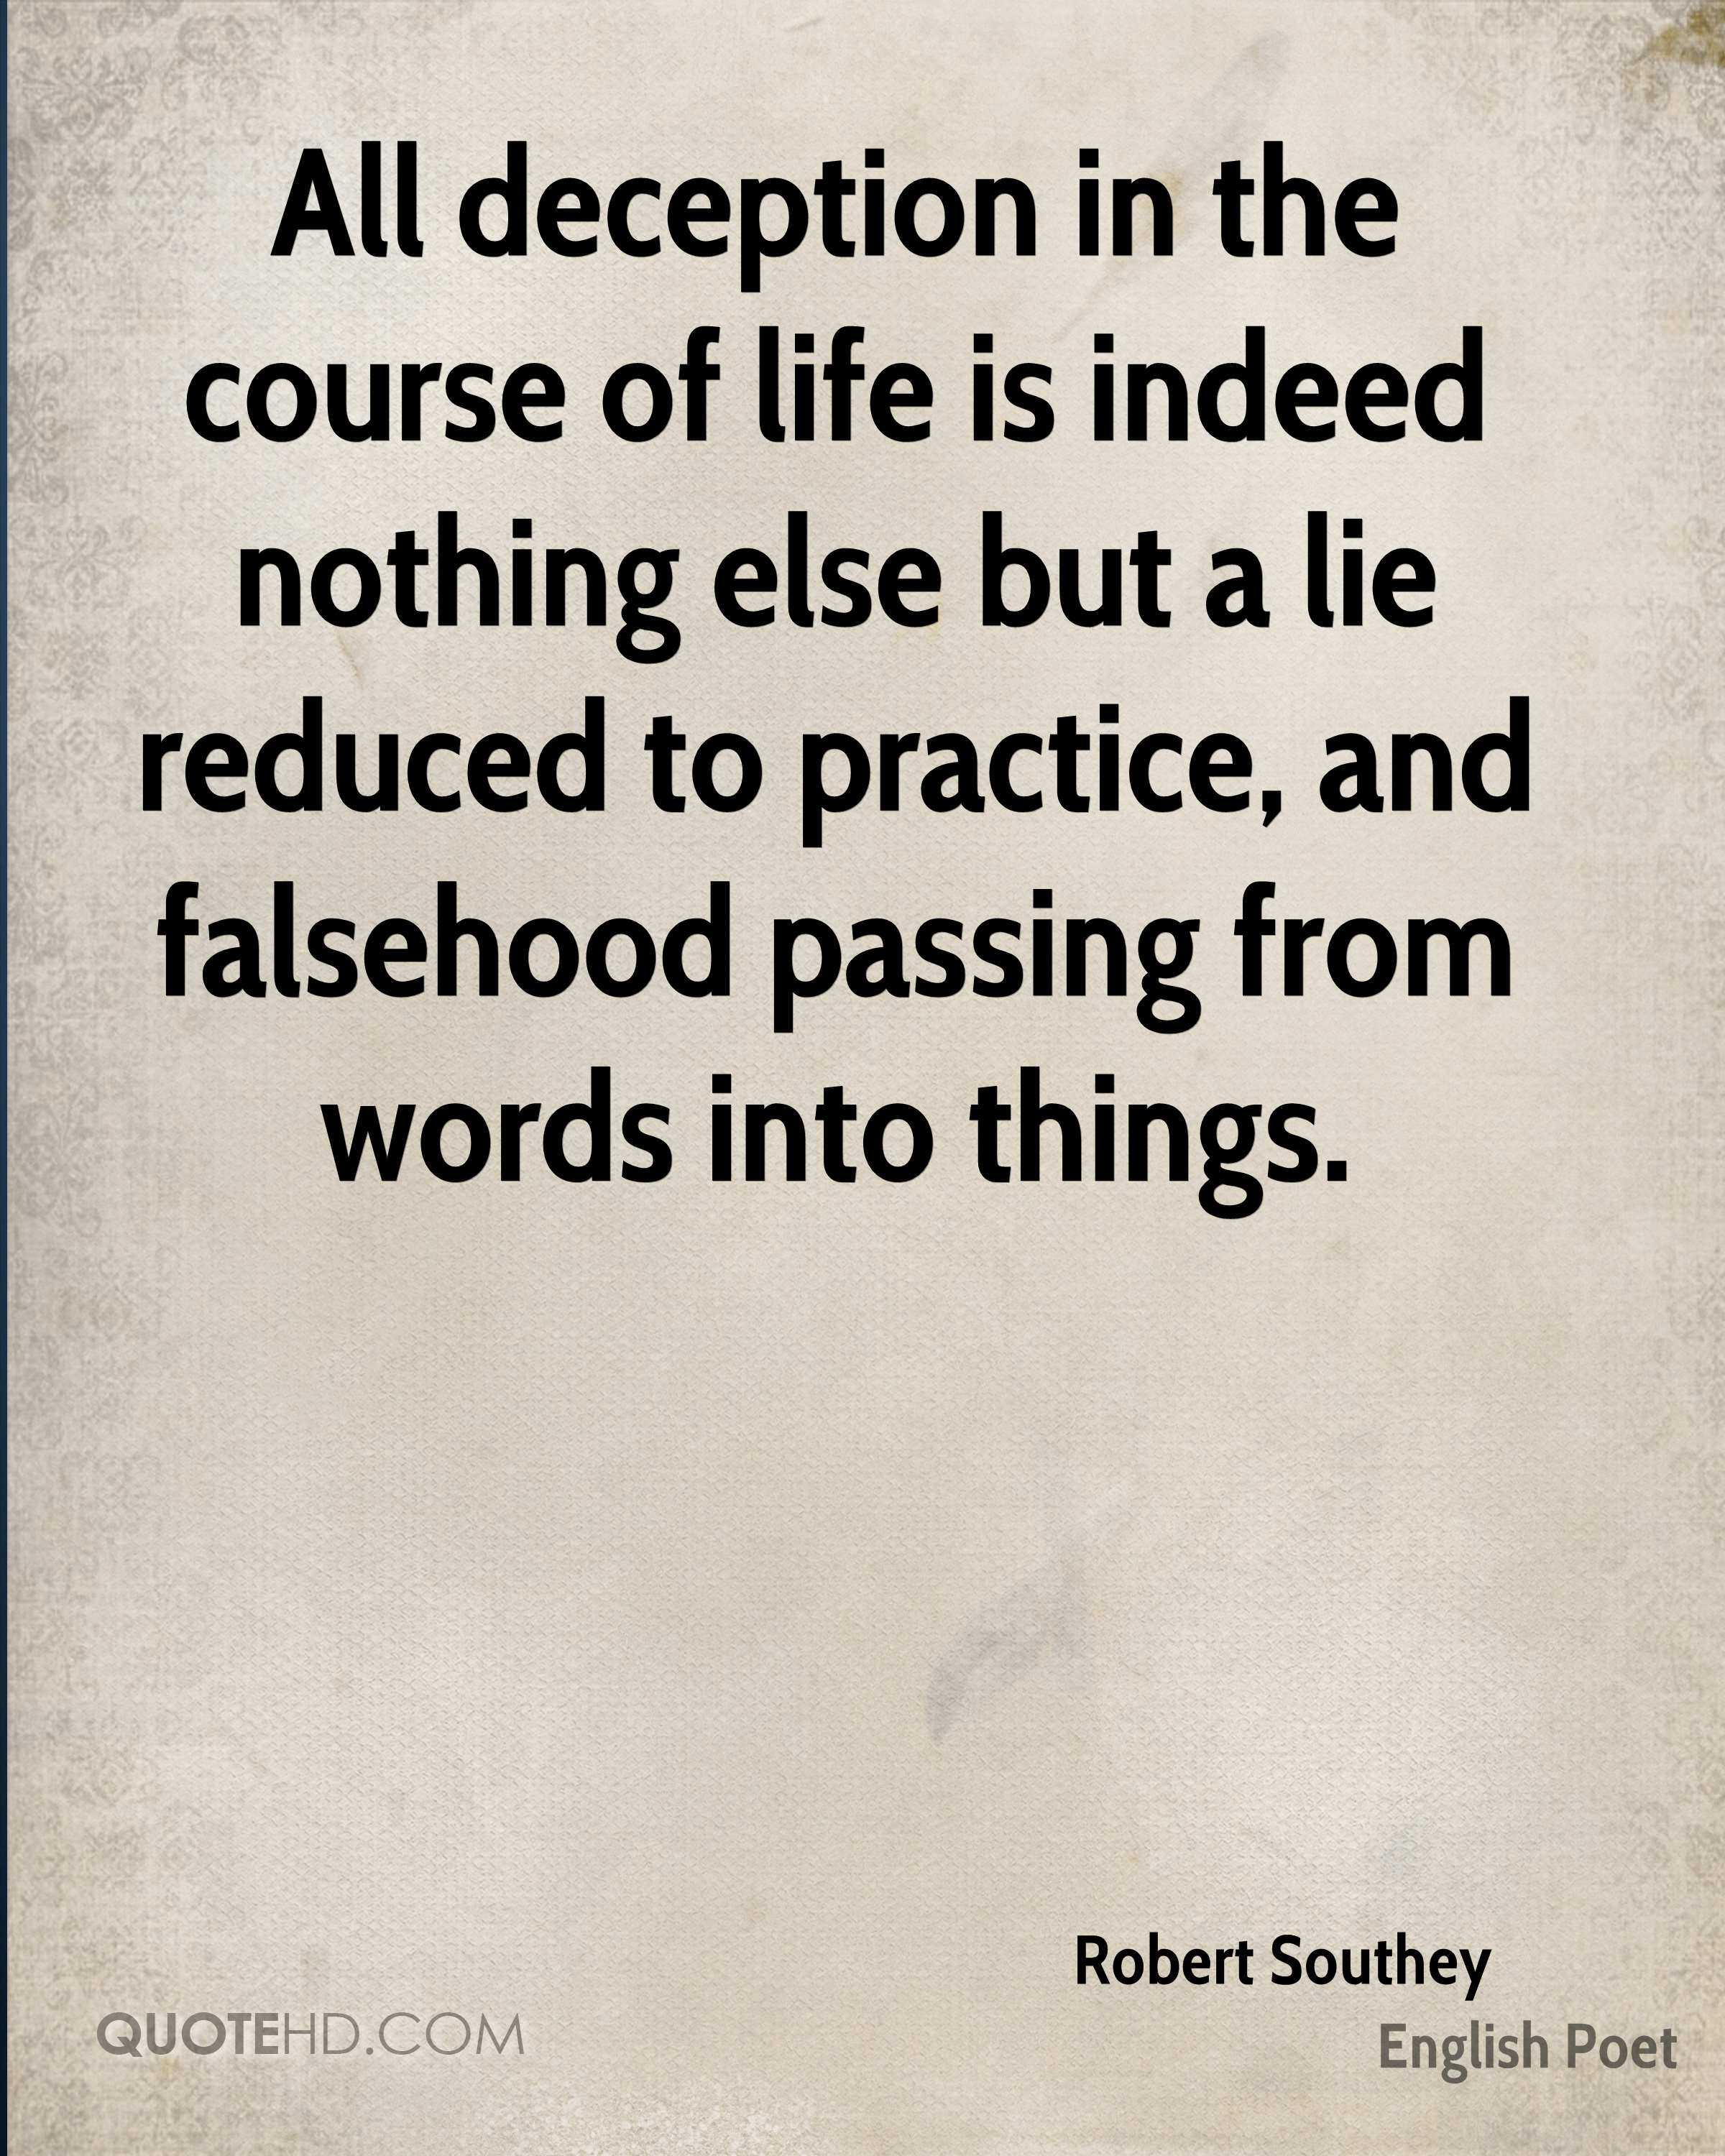 All deception in the course of life is indeed nothing else but a lie reduced to practice, and falsehood passing from words into things.